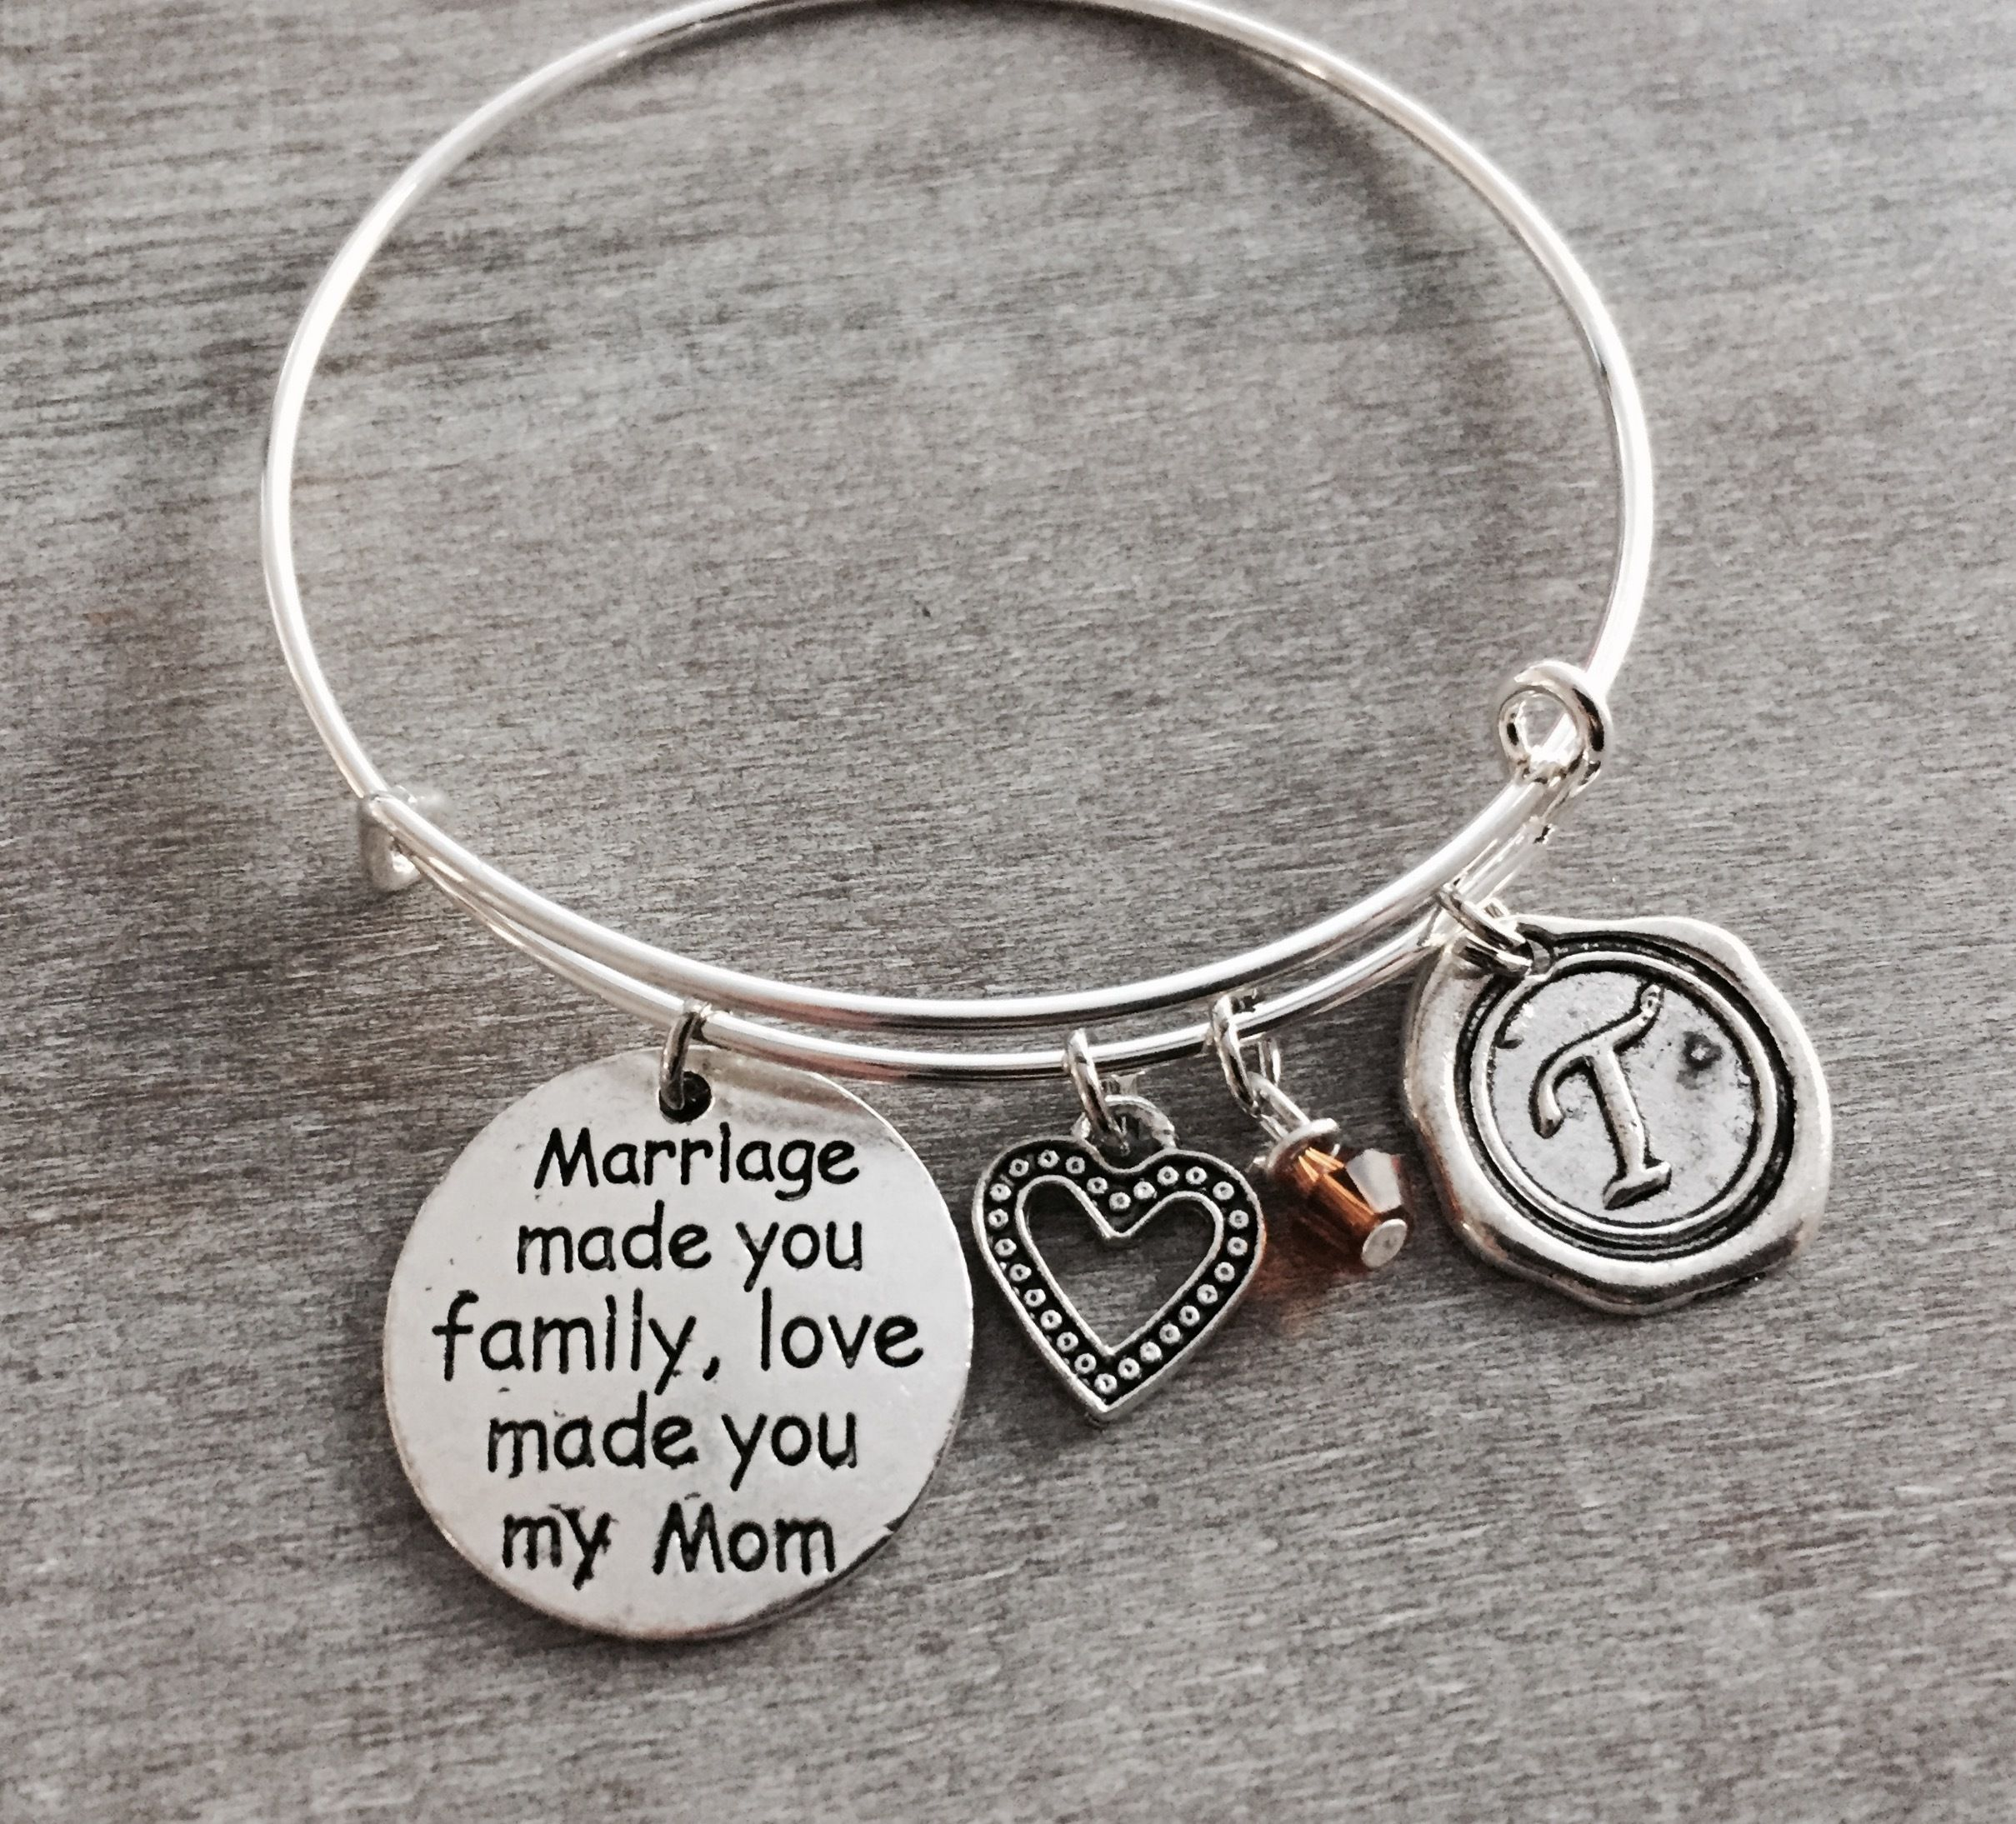 gifts one mothers s bb bangle every bracelets range with personalized idea price excellent day infinity becker pleasant charm engraved beloved alex jewelry mother and pandora gold silver at new like bracelet beautiful birthstones fresh